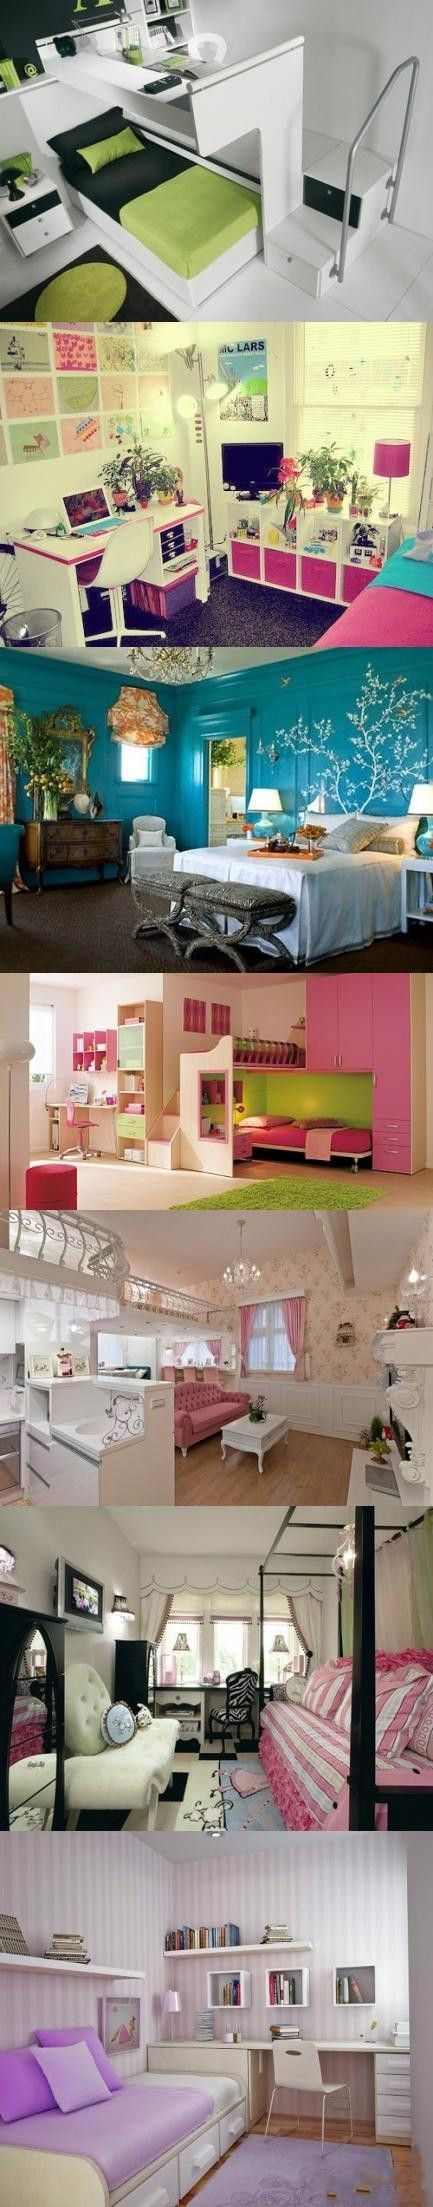 Cool Bedrooms...LOVE the first one, switch on bunk bed on top & desk underneath - I like it!